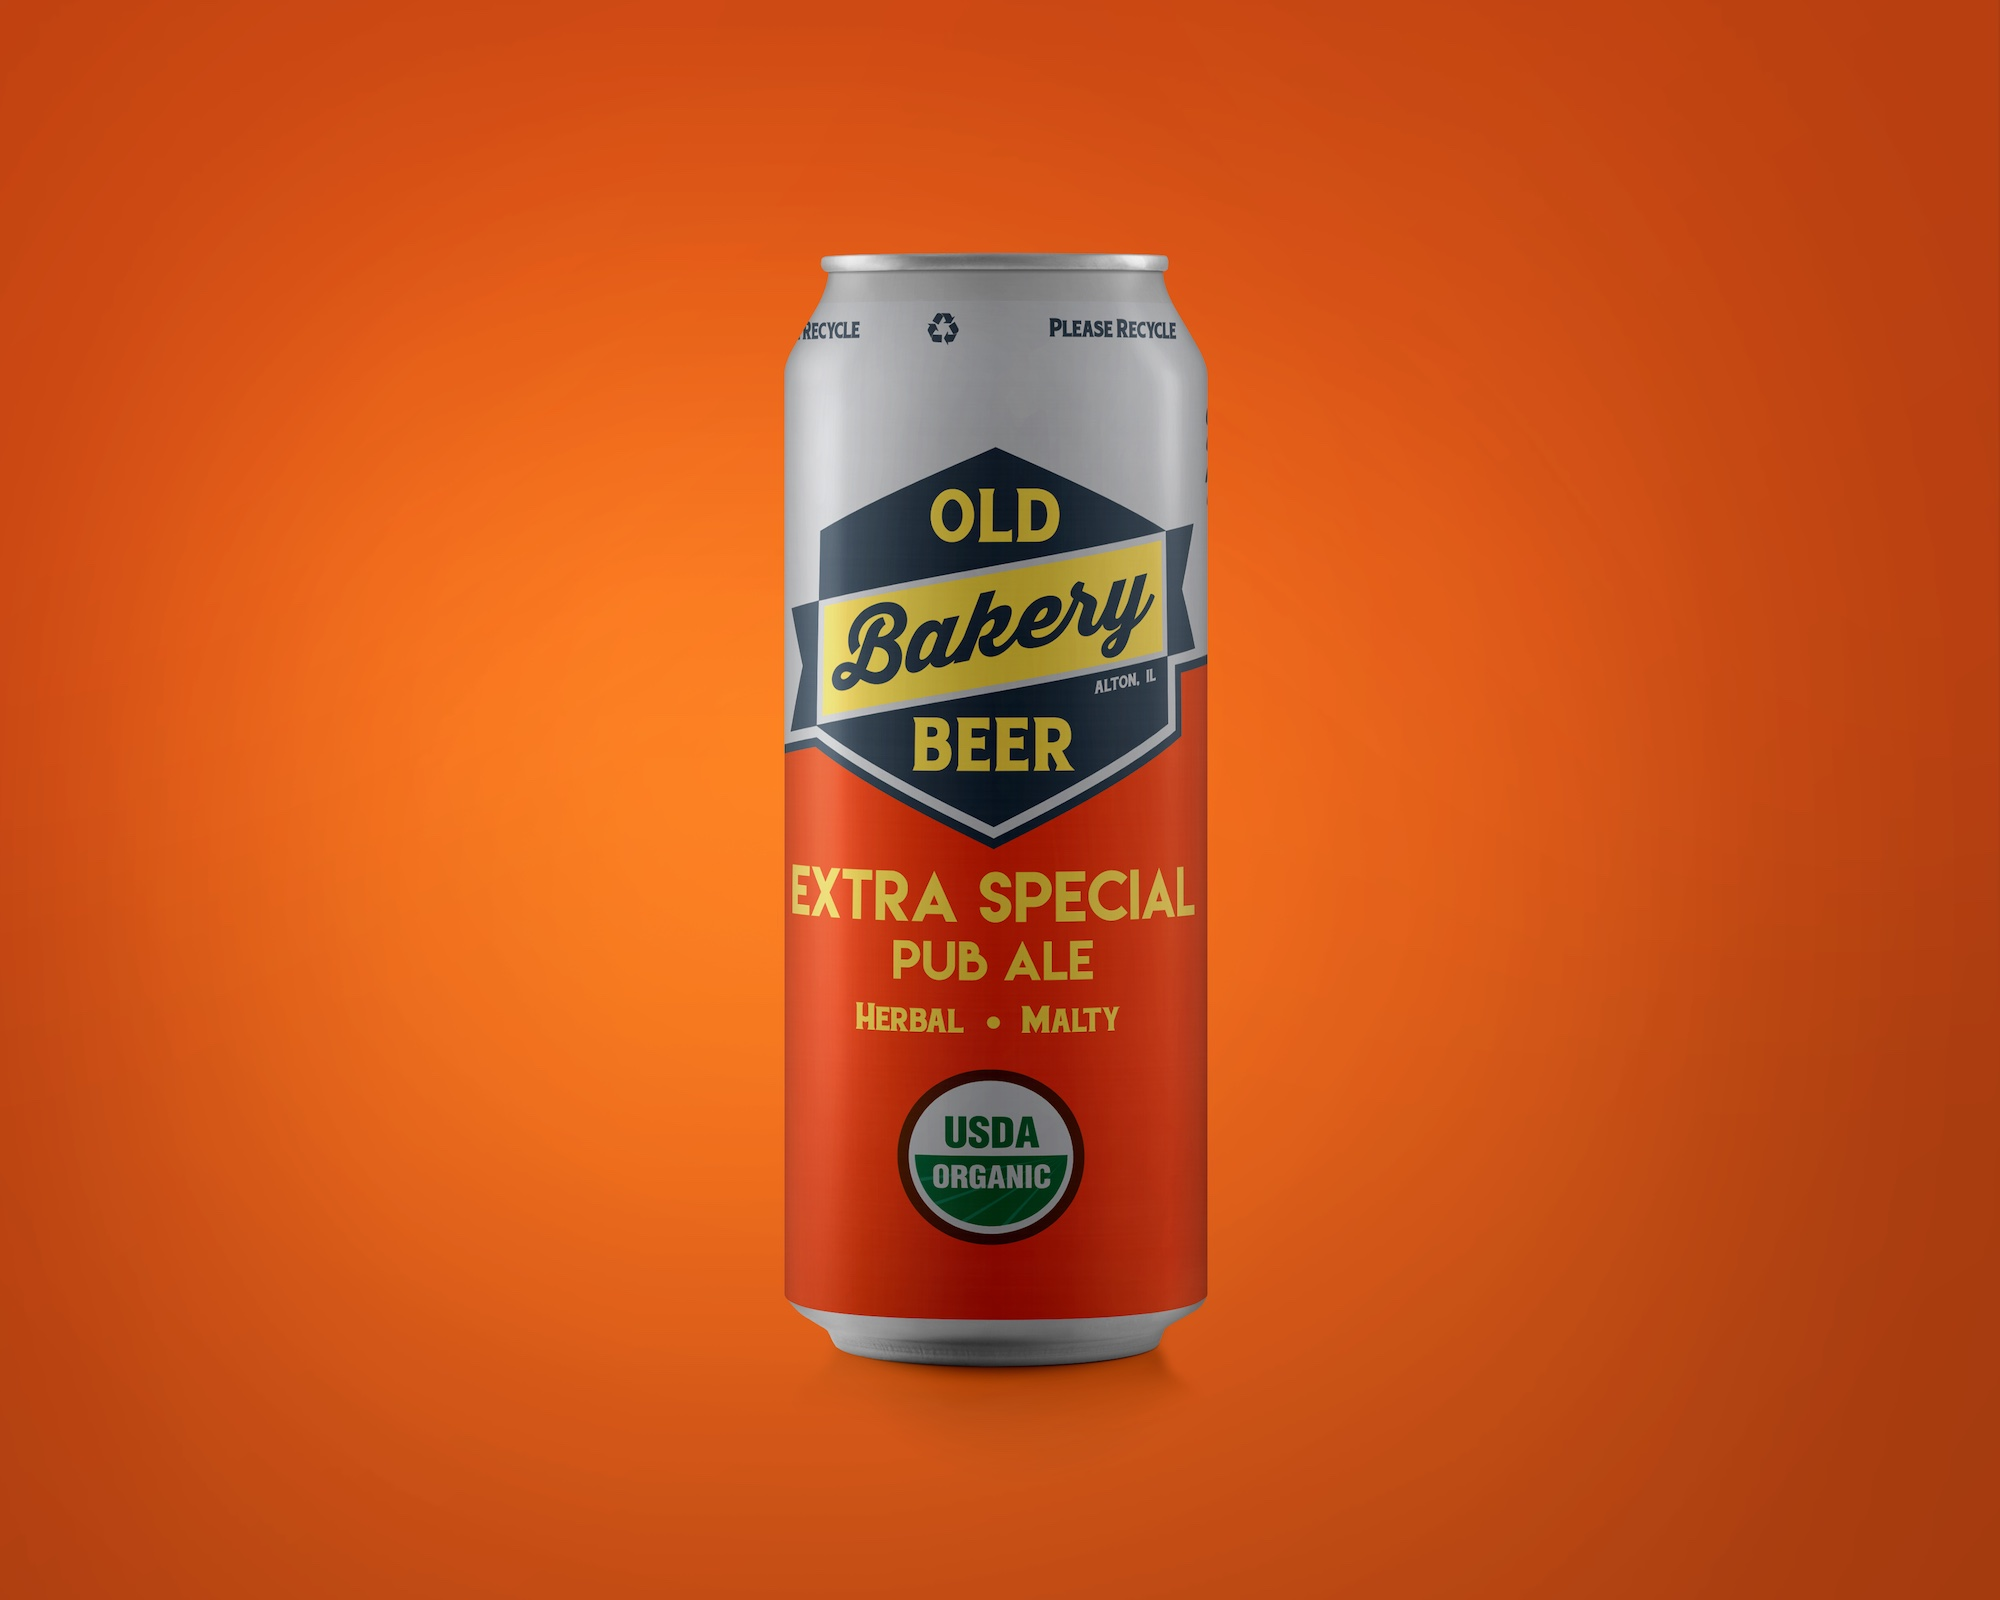 Old Bakery Beer Co craft beer cans designed by Hagan Design Co Champaign Illinois